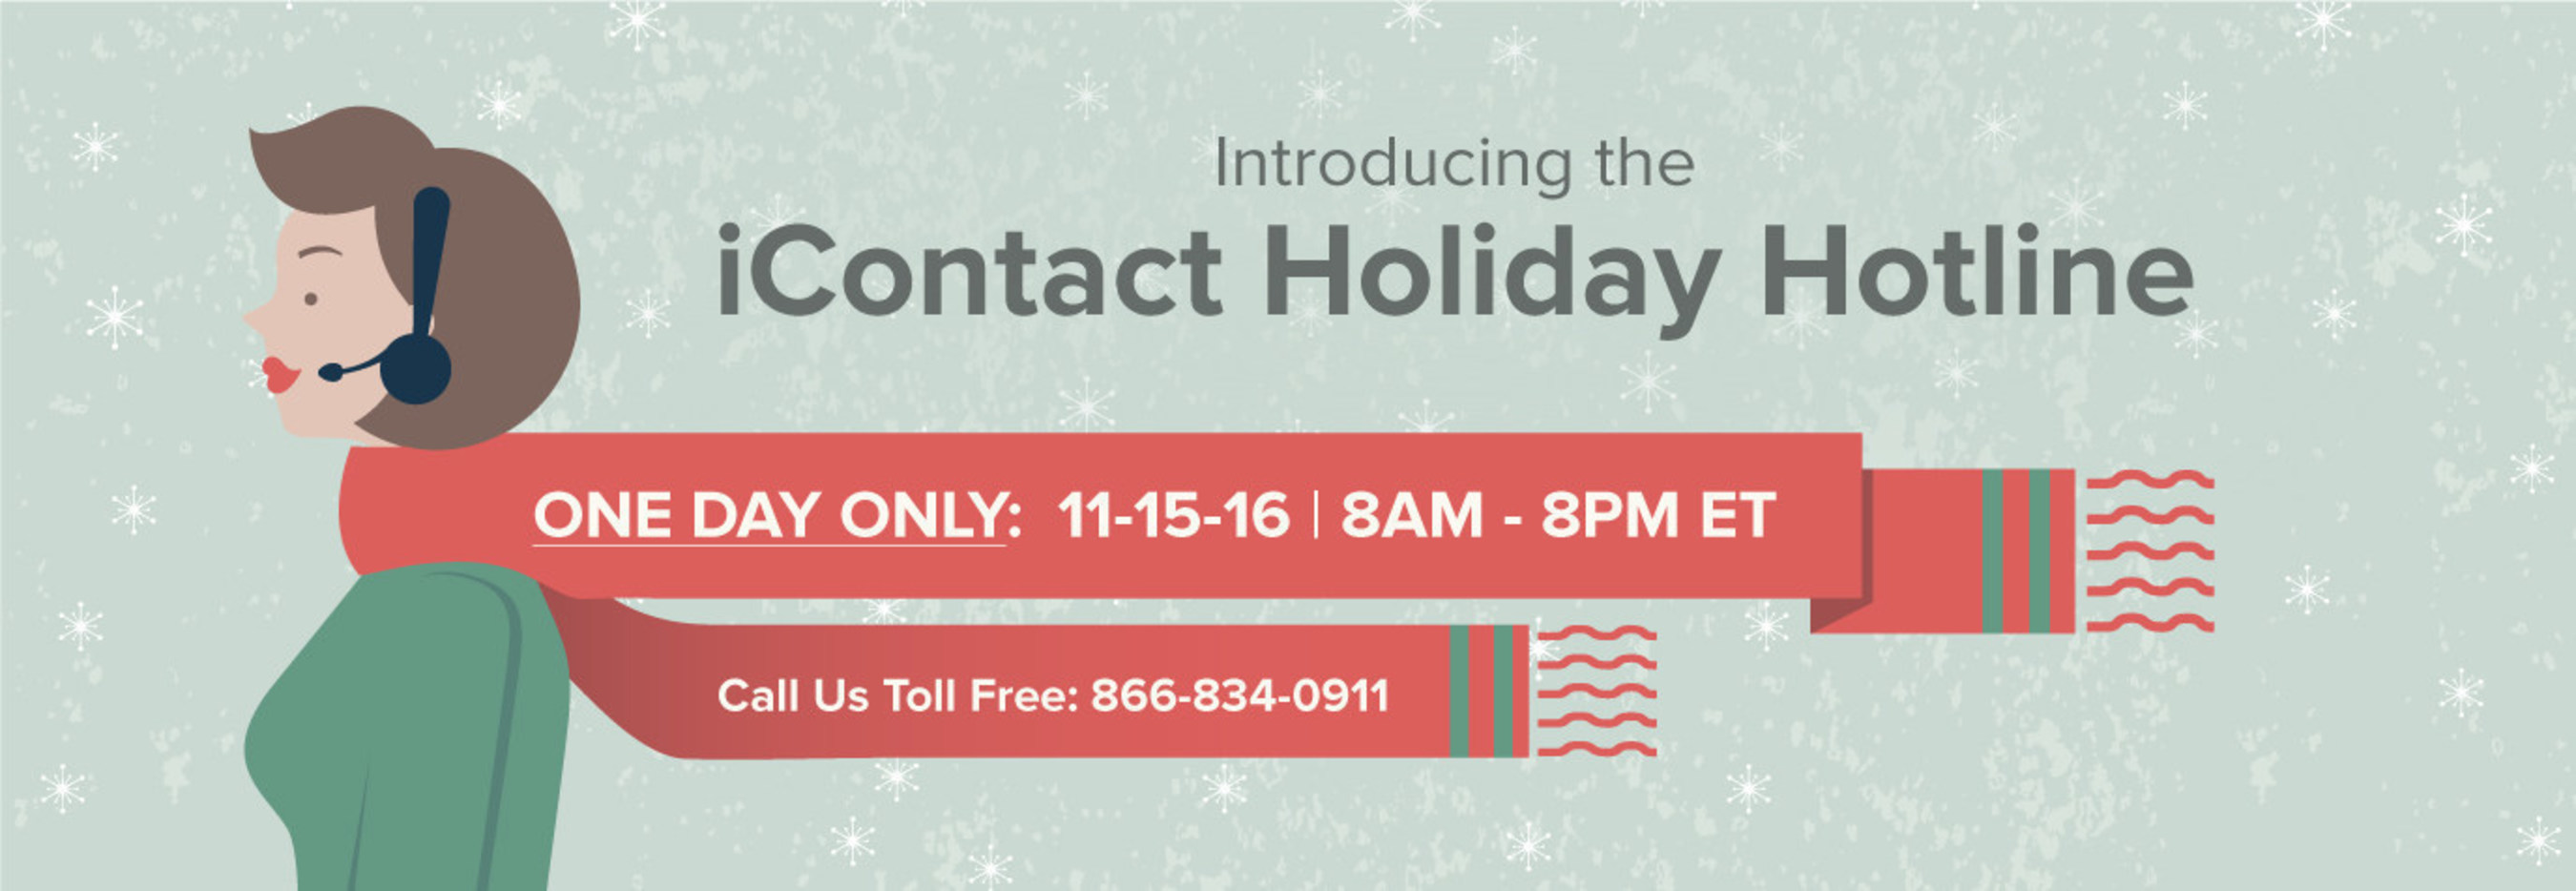 iContact Hosts Free Holiday Hotline for Email Marketers on Nov. 15